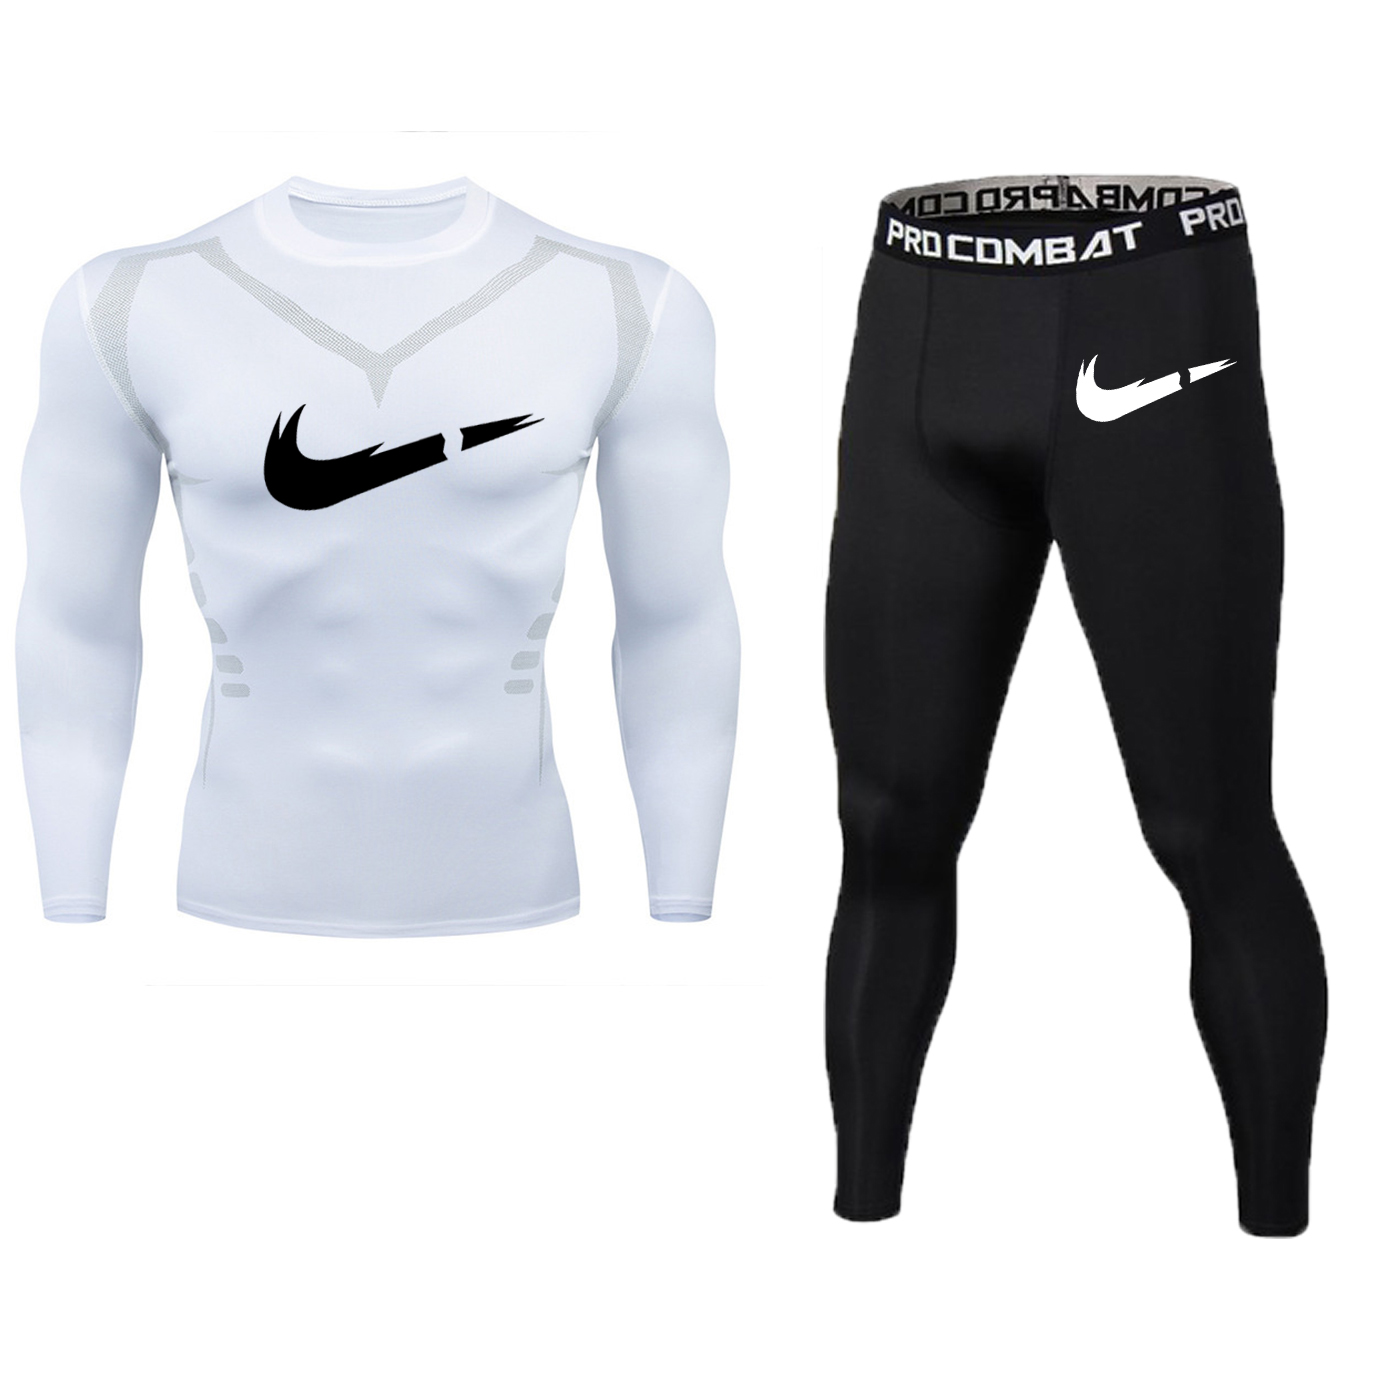 Image 2 - New Fitness Men's Set Pure Black Compression Top + Leggings Underwear Crossfit Long Sleeve + Short Sleeve T Shirt Apparel Set-in Men's Sets from Men's Clothing